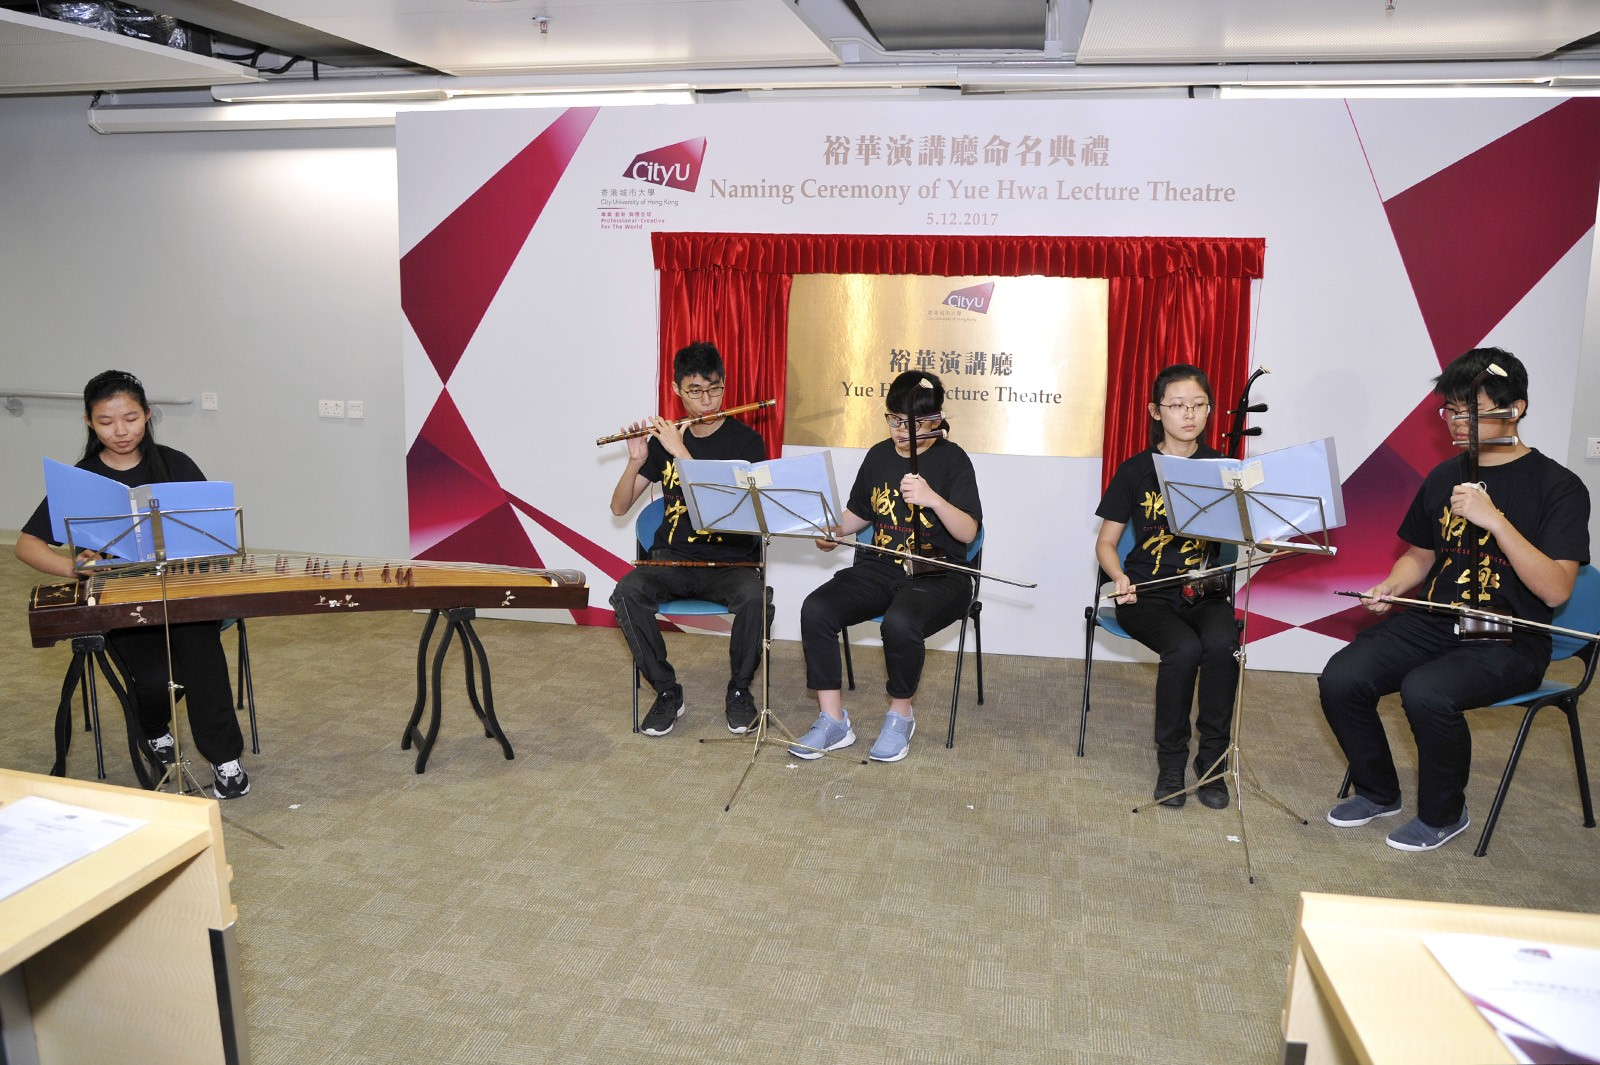 CityU's Chinese Orchestra performs at the ceremony.